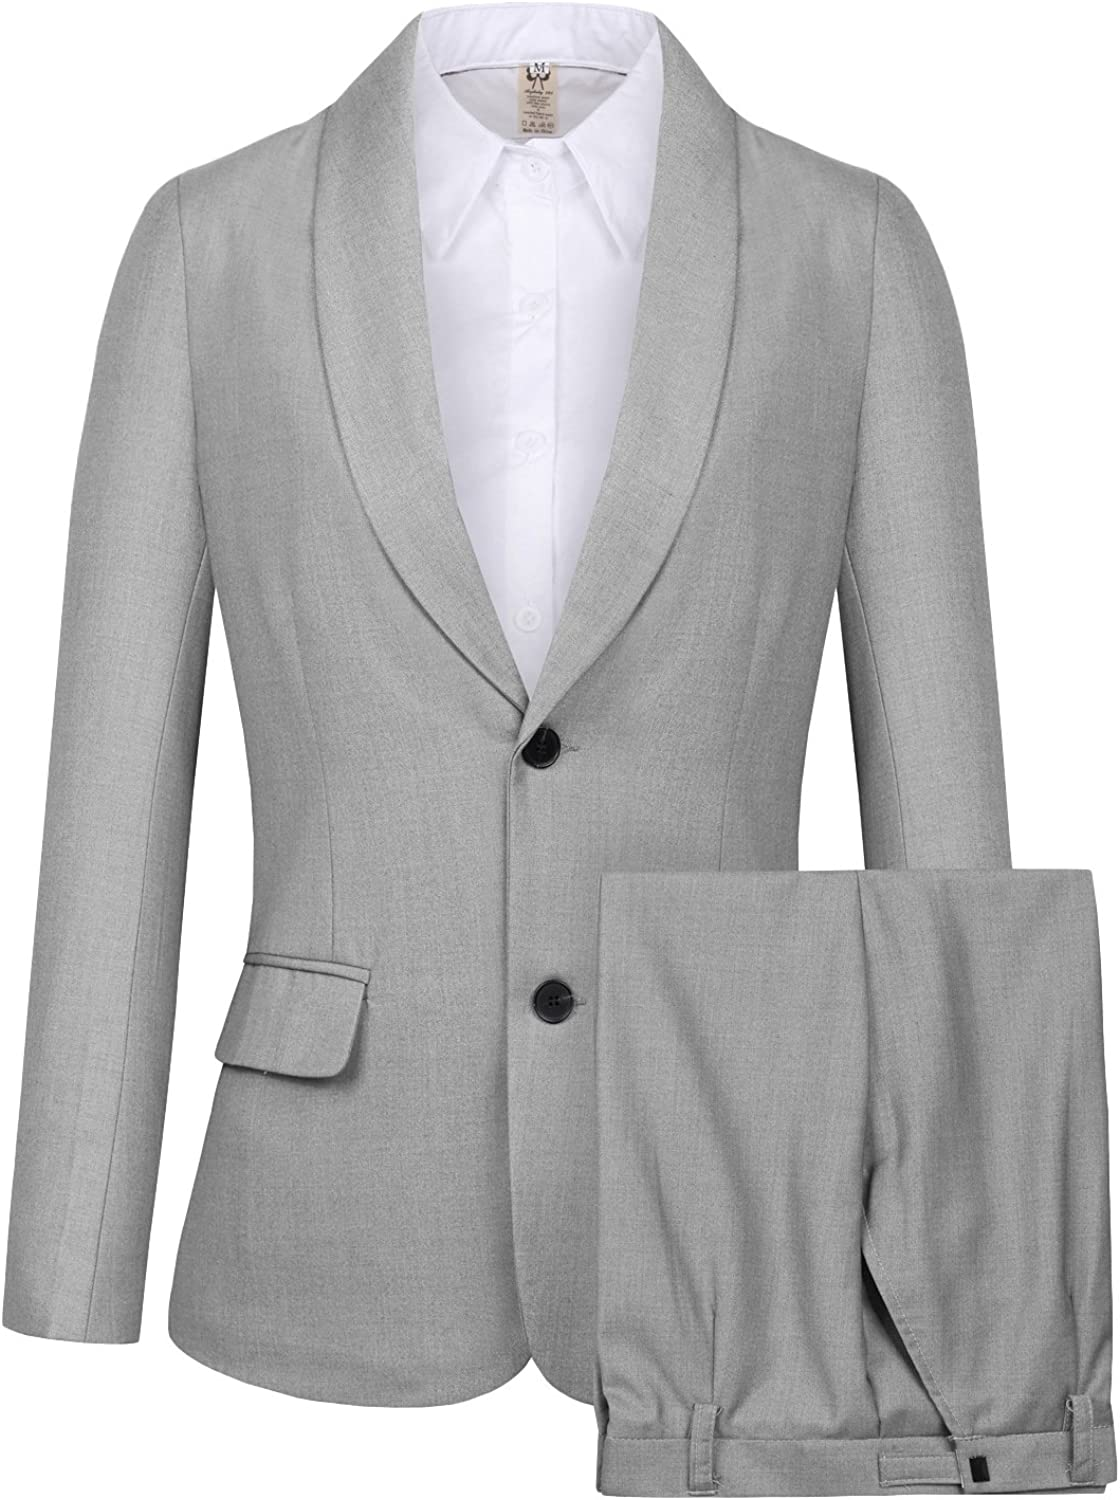 CMDC Women's 2 PC Business Casual Shawl Collar Formal Blazer Suit Pants Sets MI35